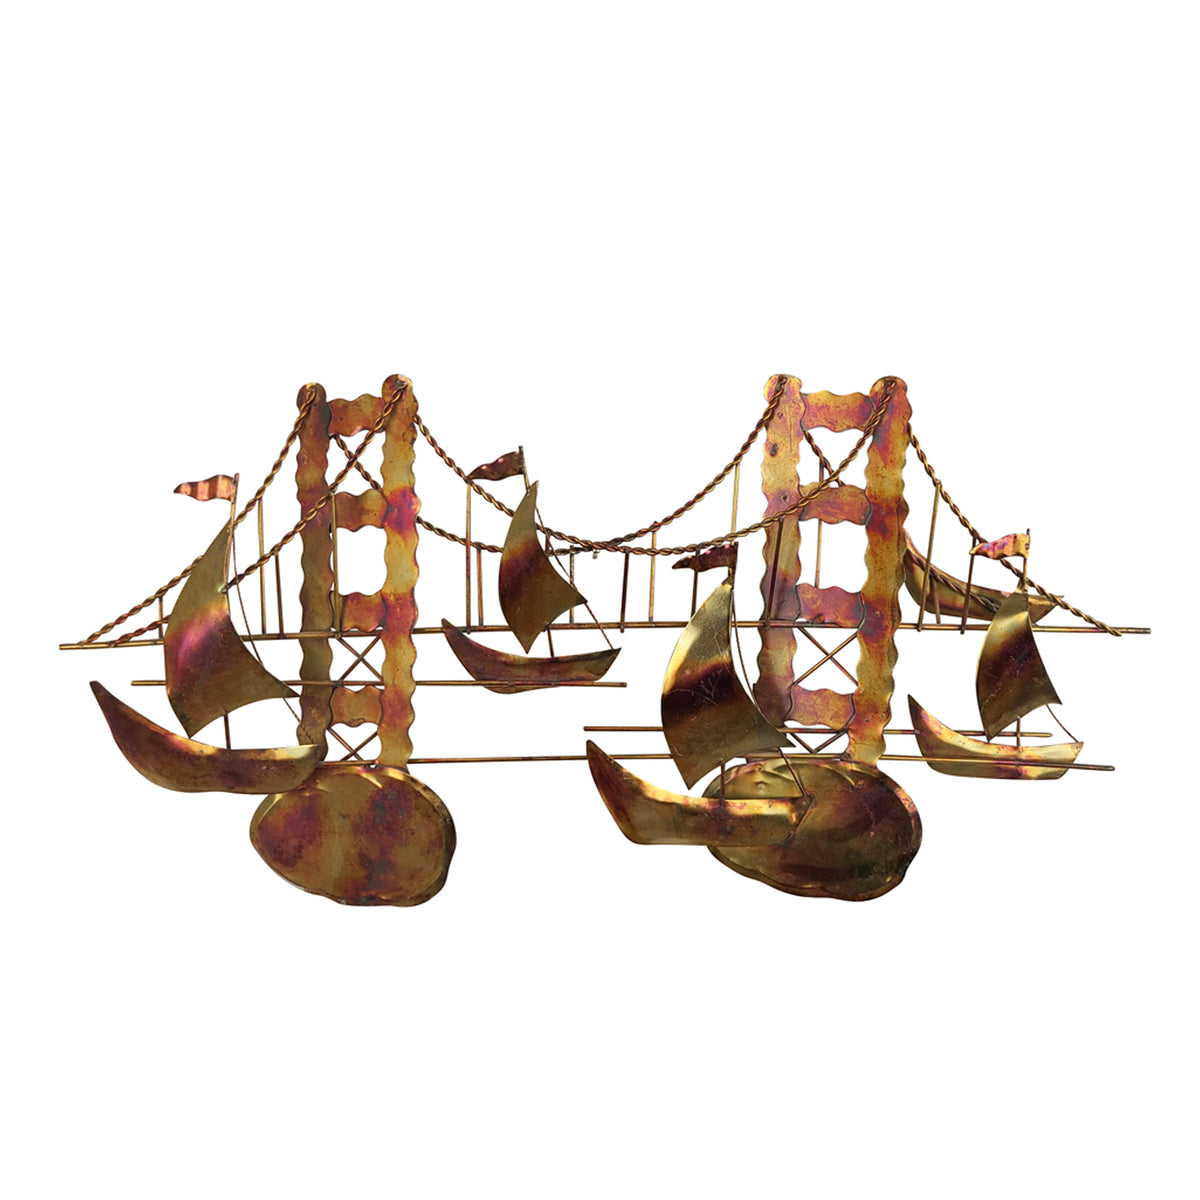 Vintage Bridge and Boats Wall Sculpture Curtis Jere